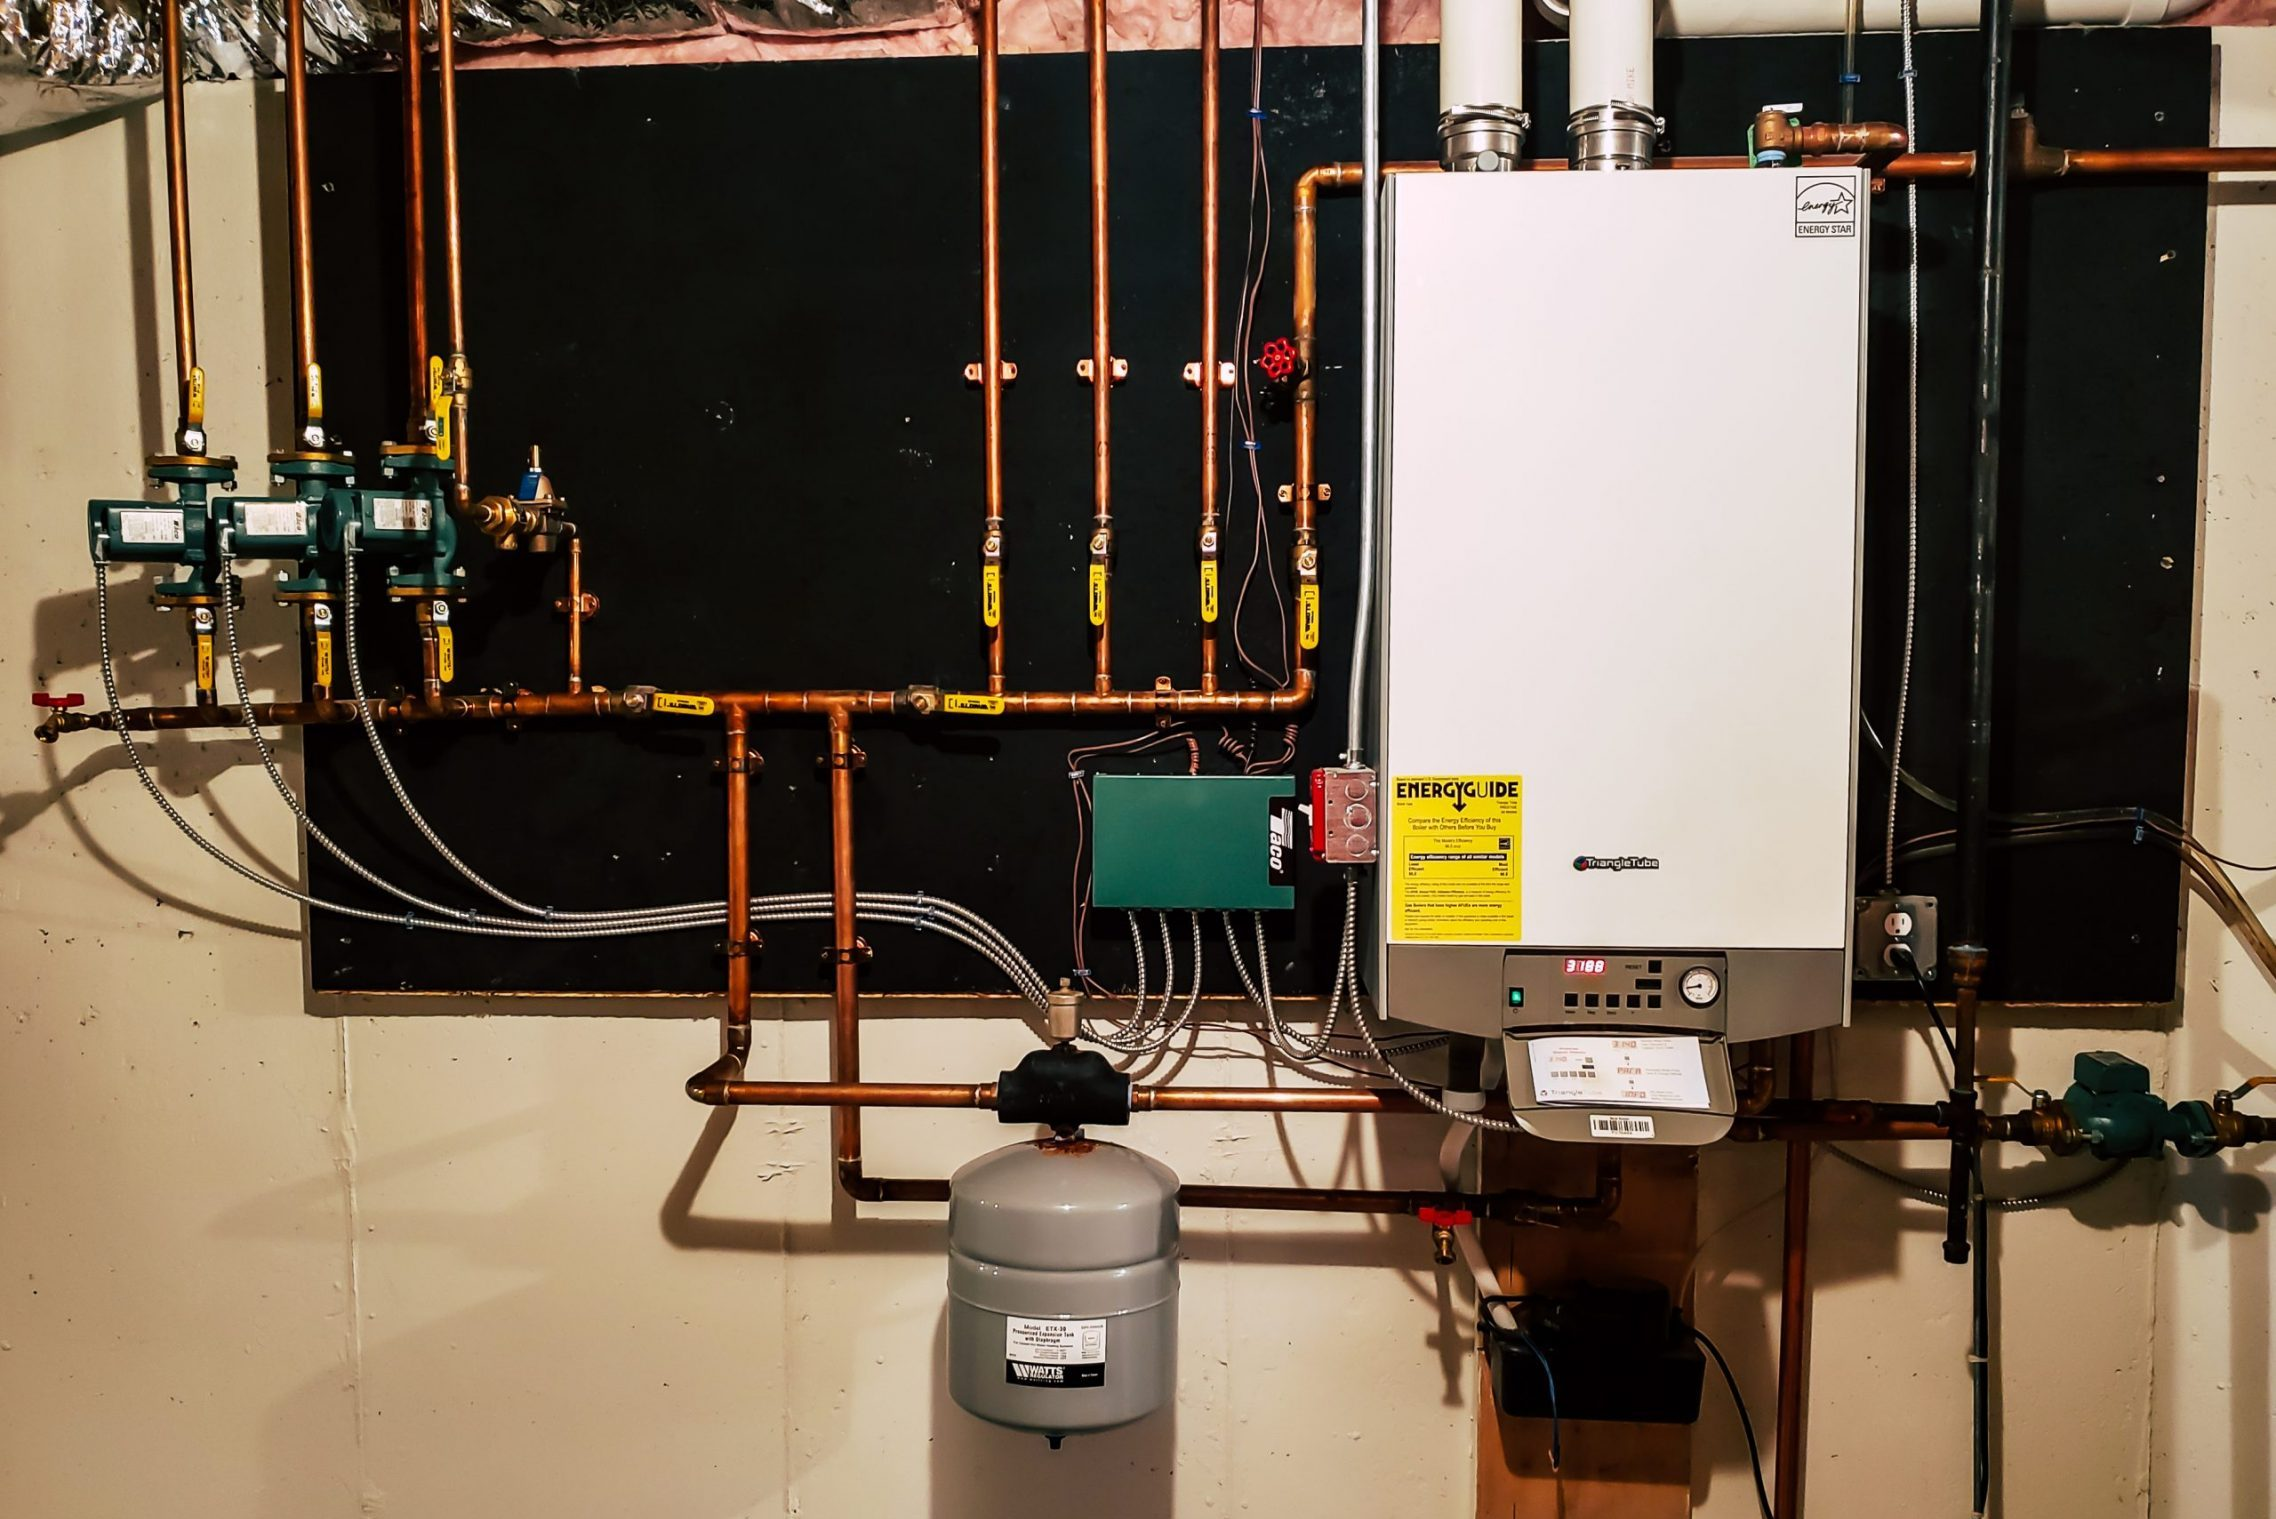 High,Efficiency,Wall,Mounted,Boiler,With,On,Demand,Hot,Water